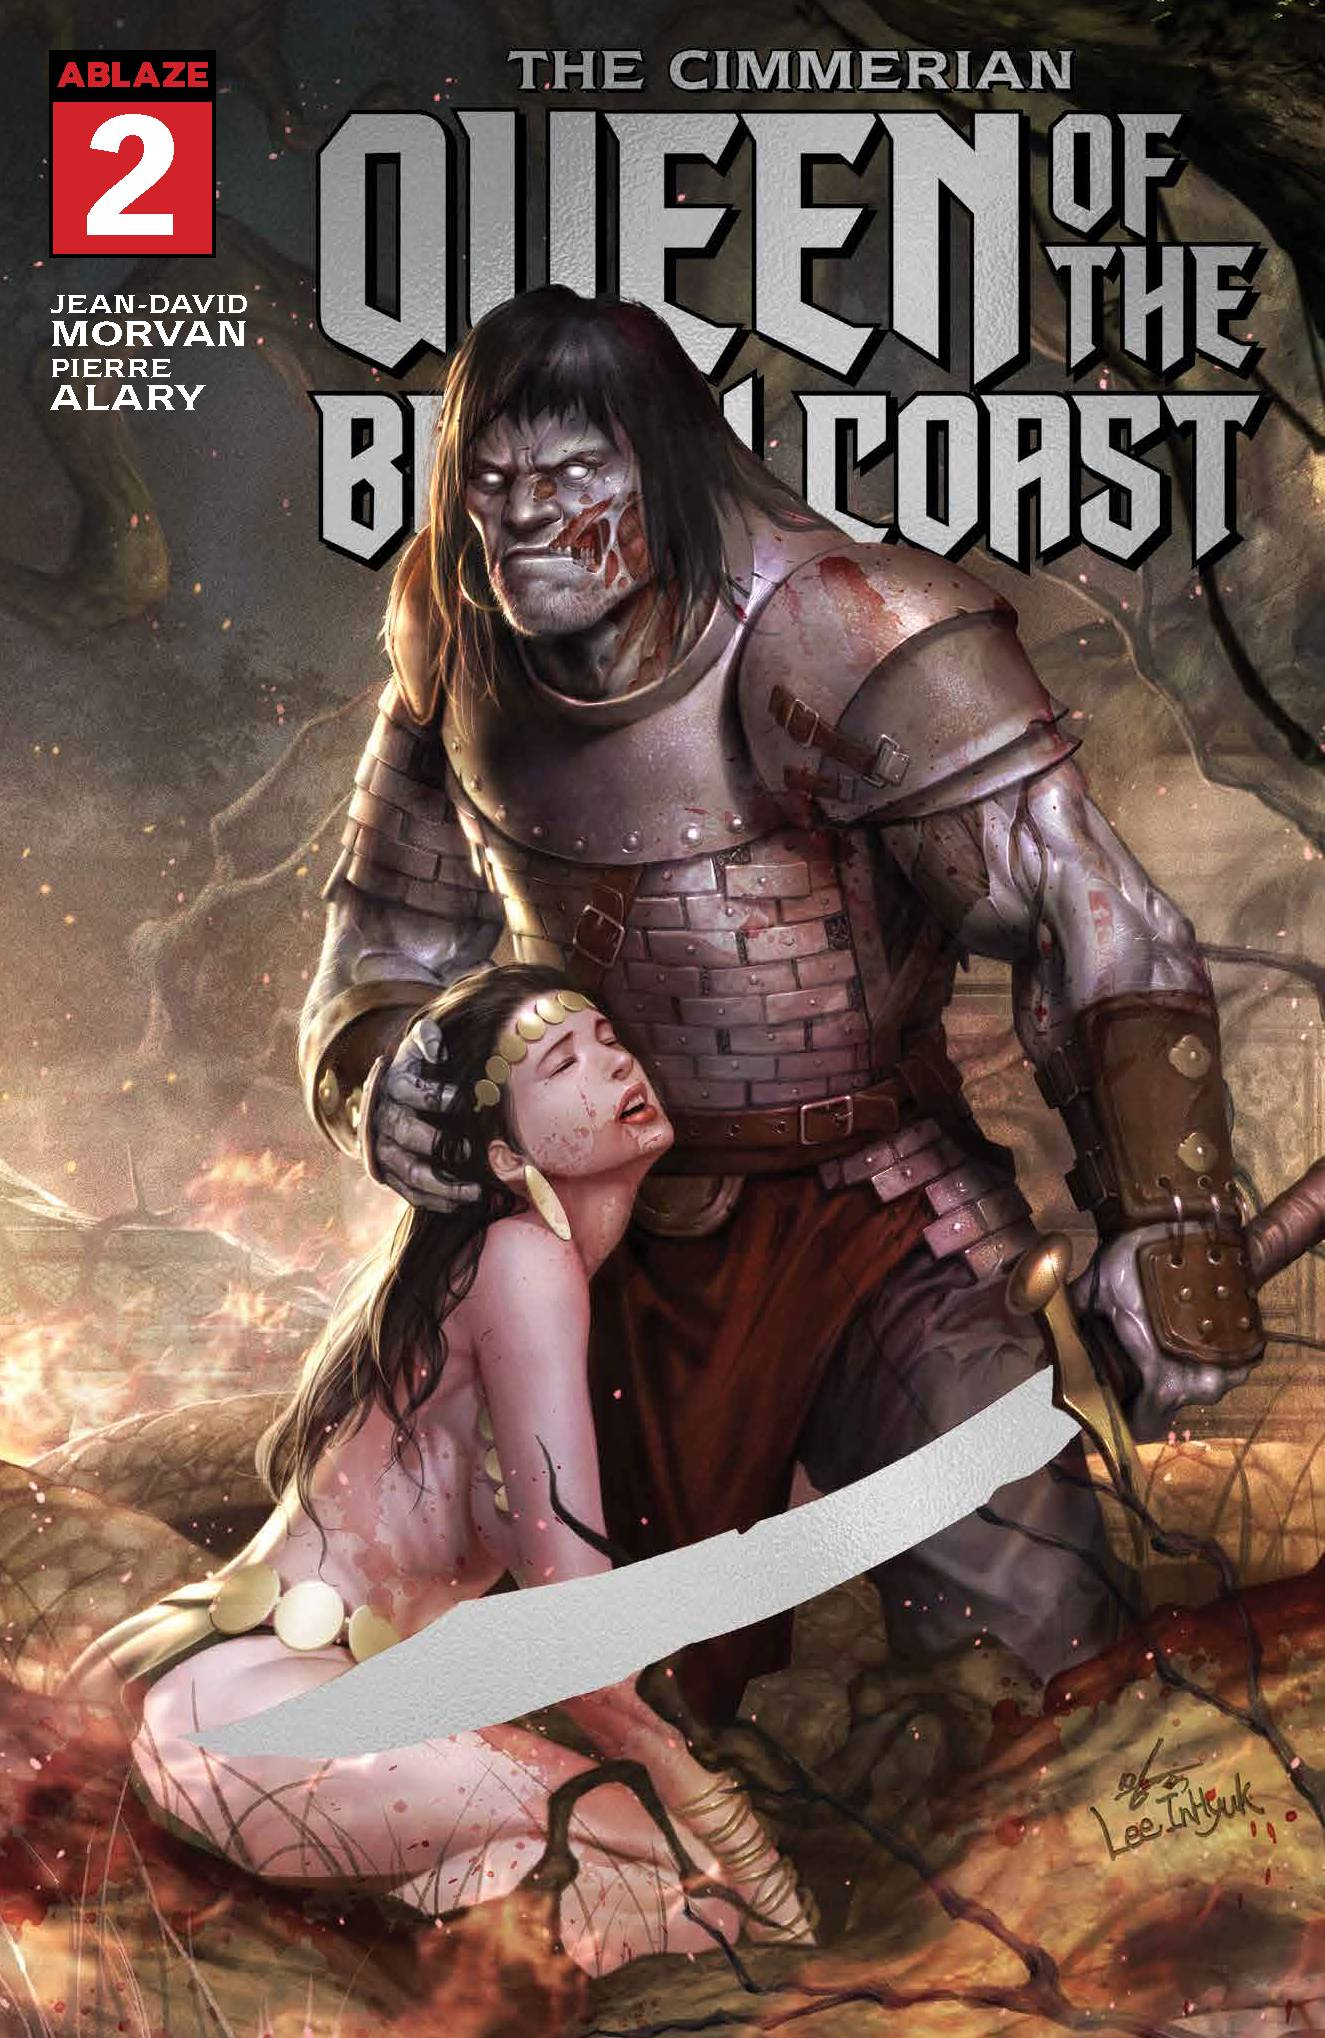 03/25/2020 CIMMERIAN QUEEN OF BLACK COAST #2 1:10 ZOMBIE FOIL VARIANT